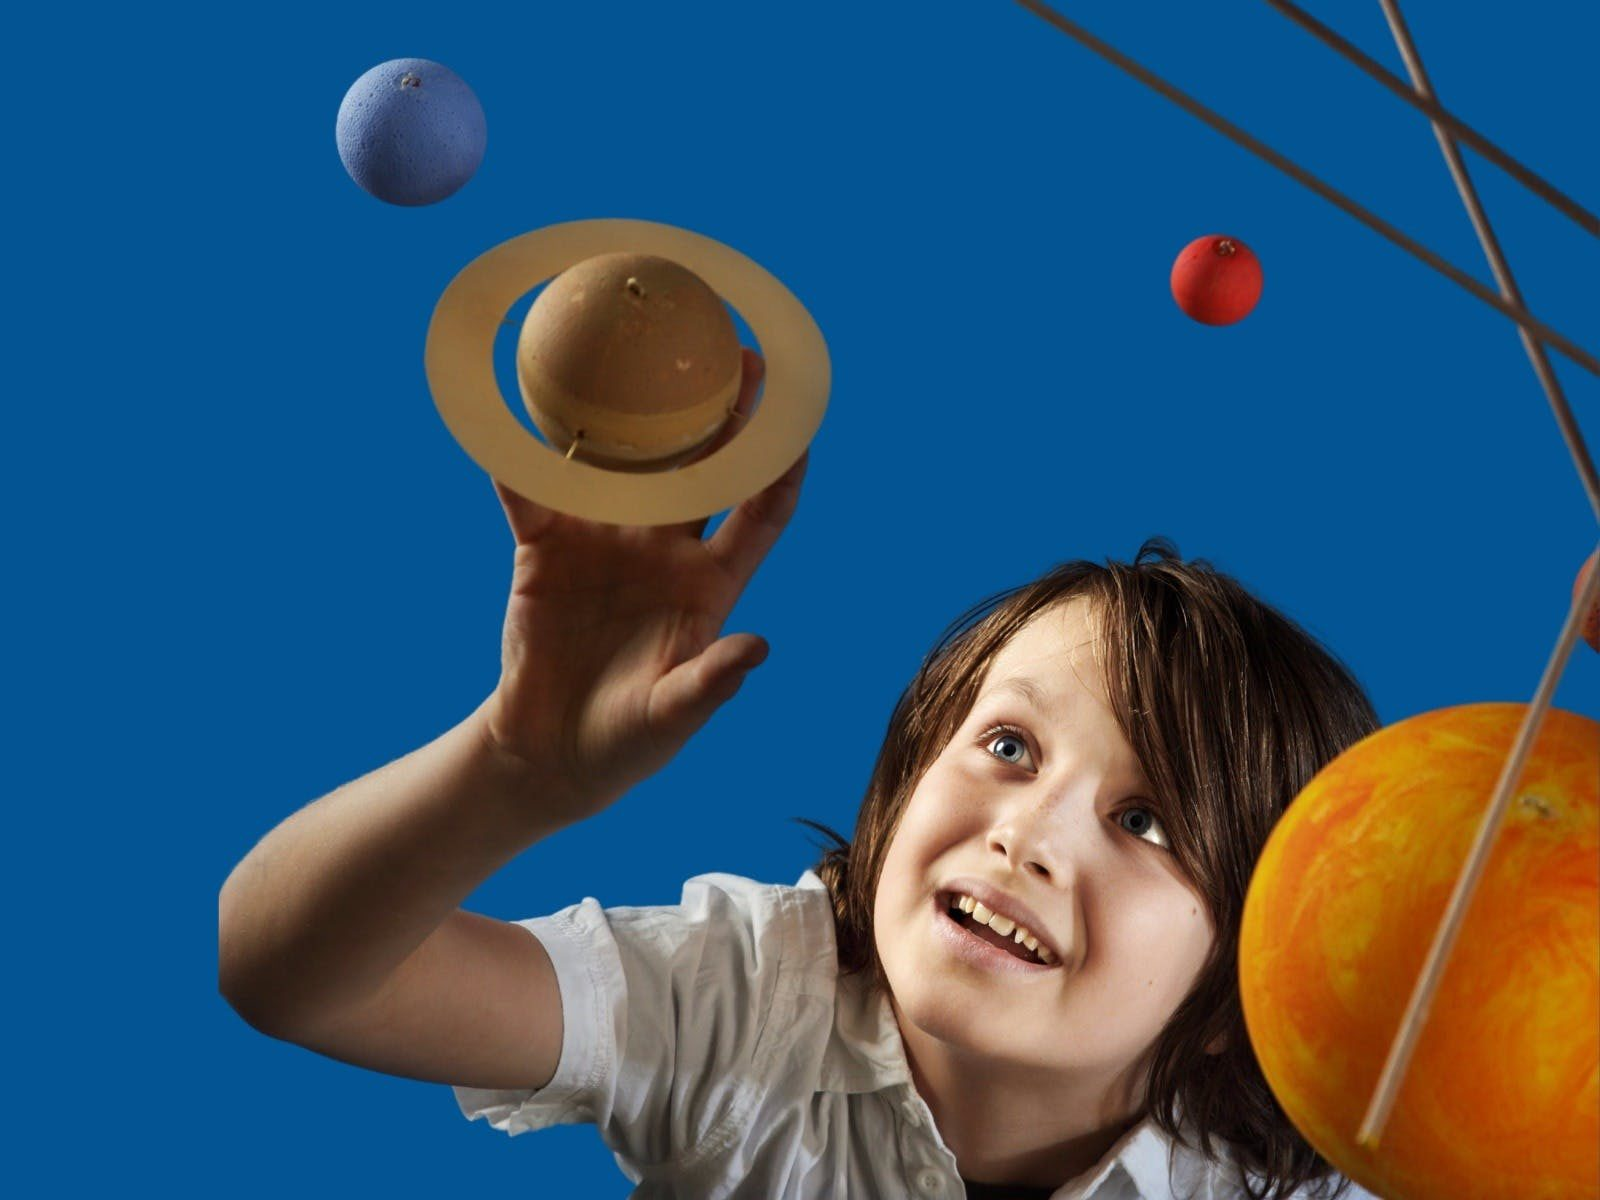 Child looking at model of planets